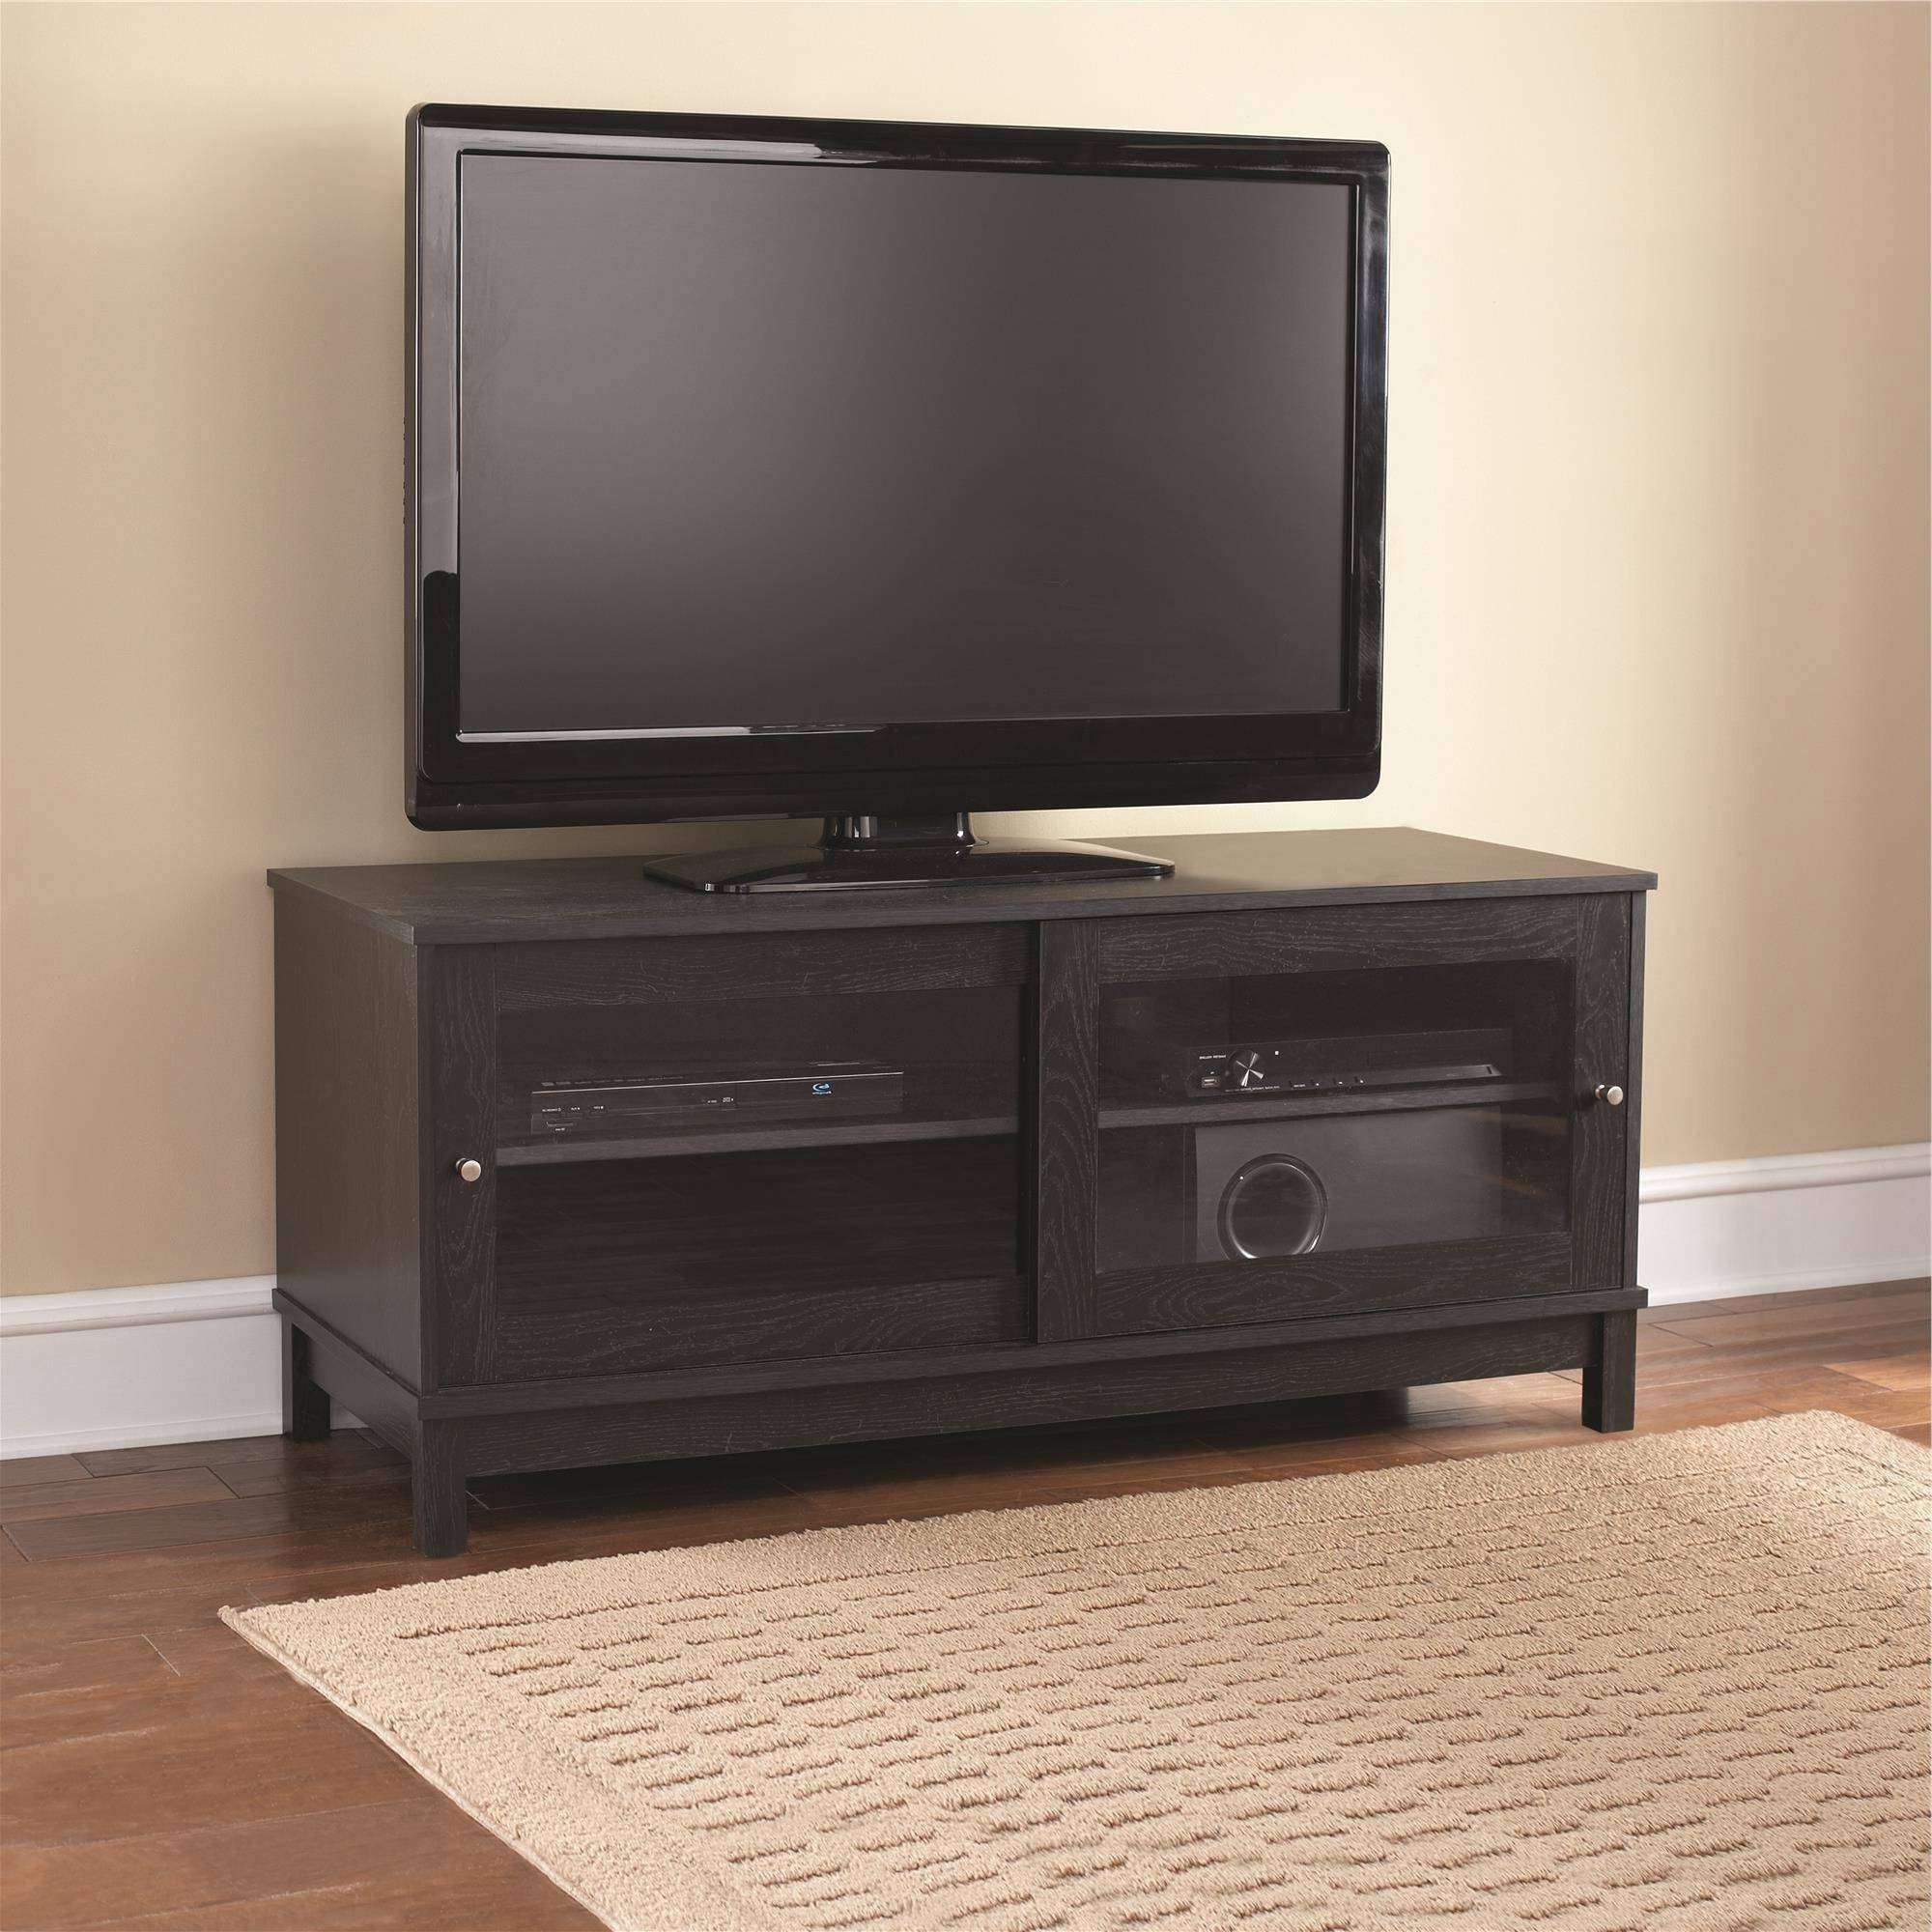 "Mainstays 55"" Tv Stand With Sliding Glass Doors, Black Ebony Ash Throughout Tv Cabinets With Glass Doors (View 13 of 20)"